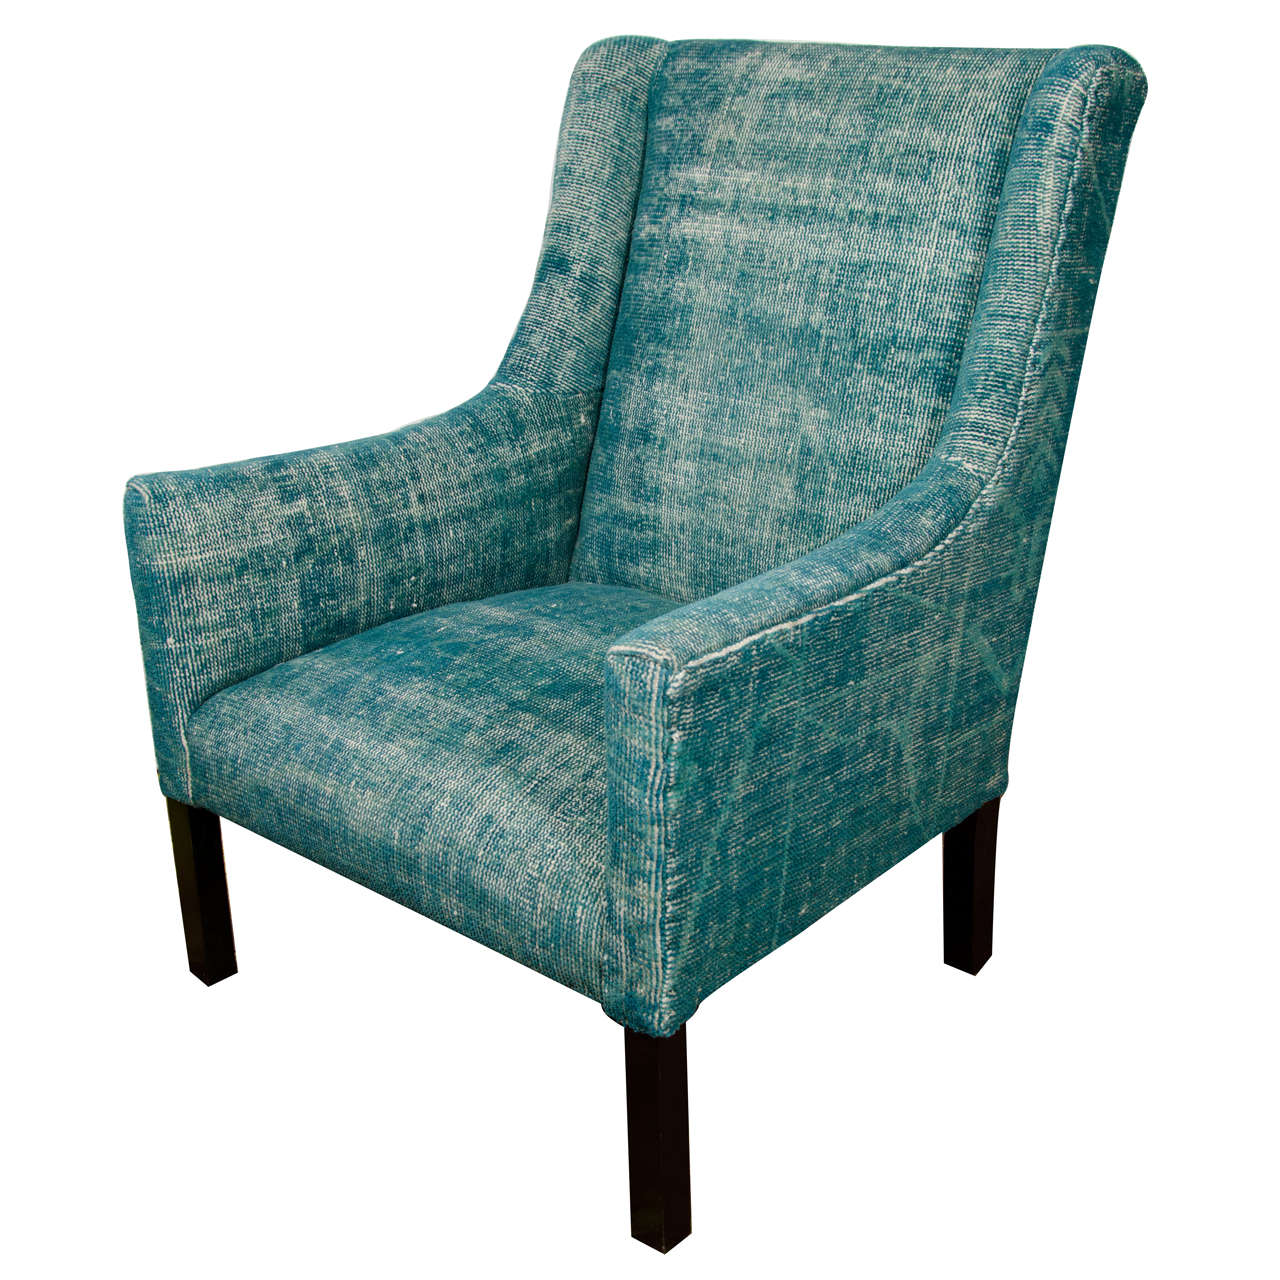 Teal Chair Indian Dhurrie Upholstered Teal Arm Chair At 1stdibs